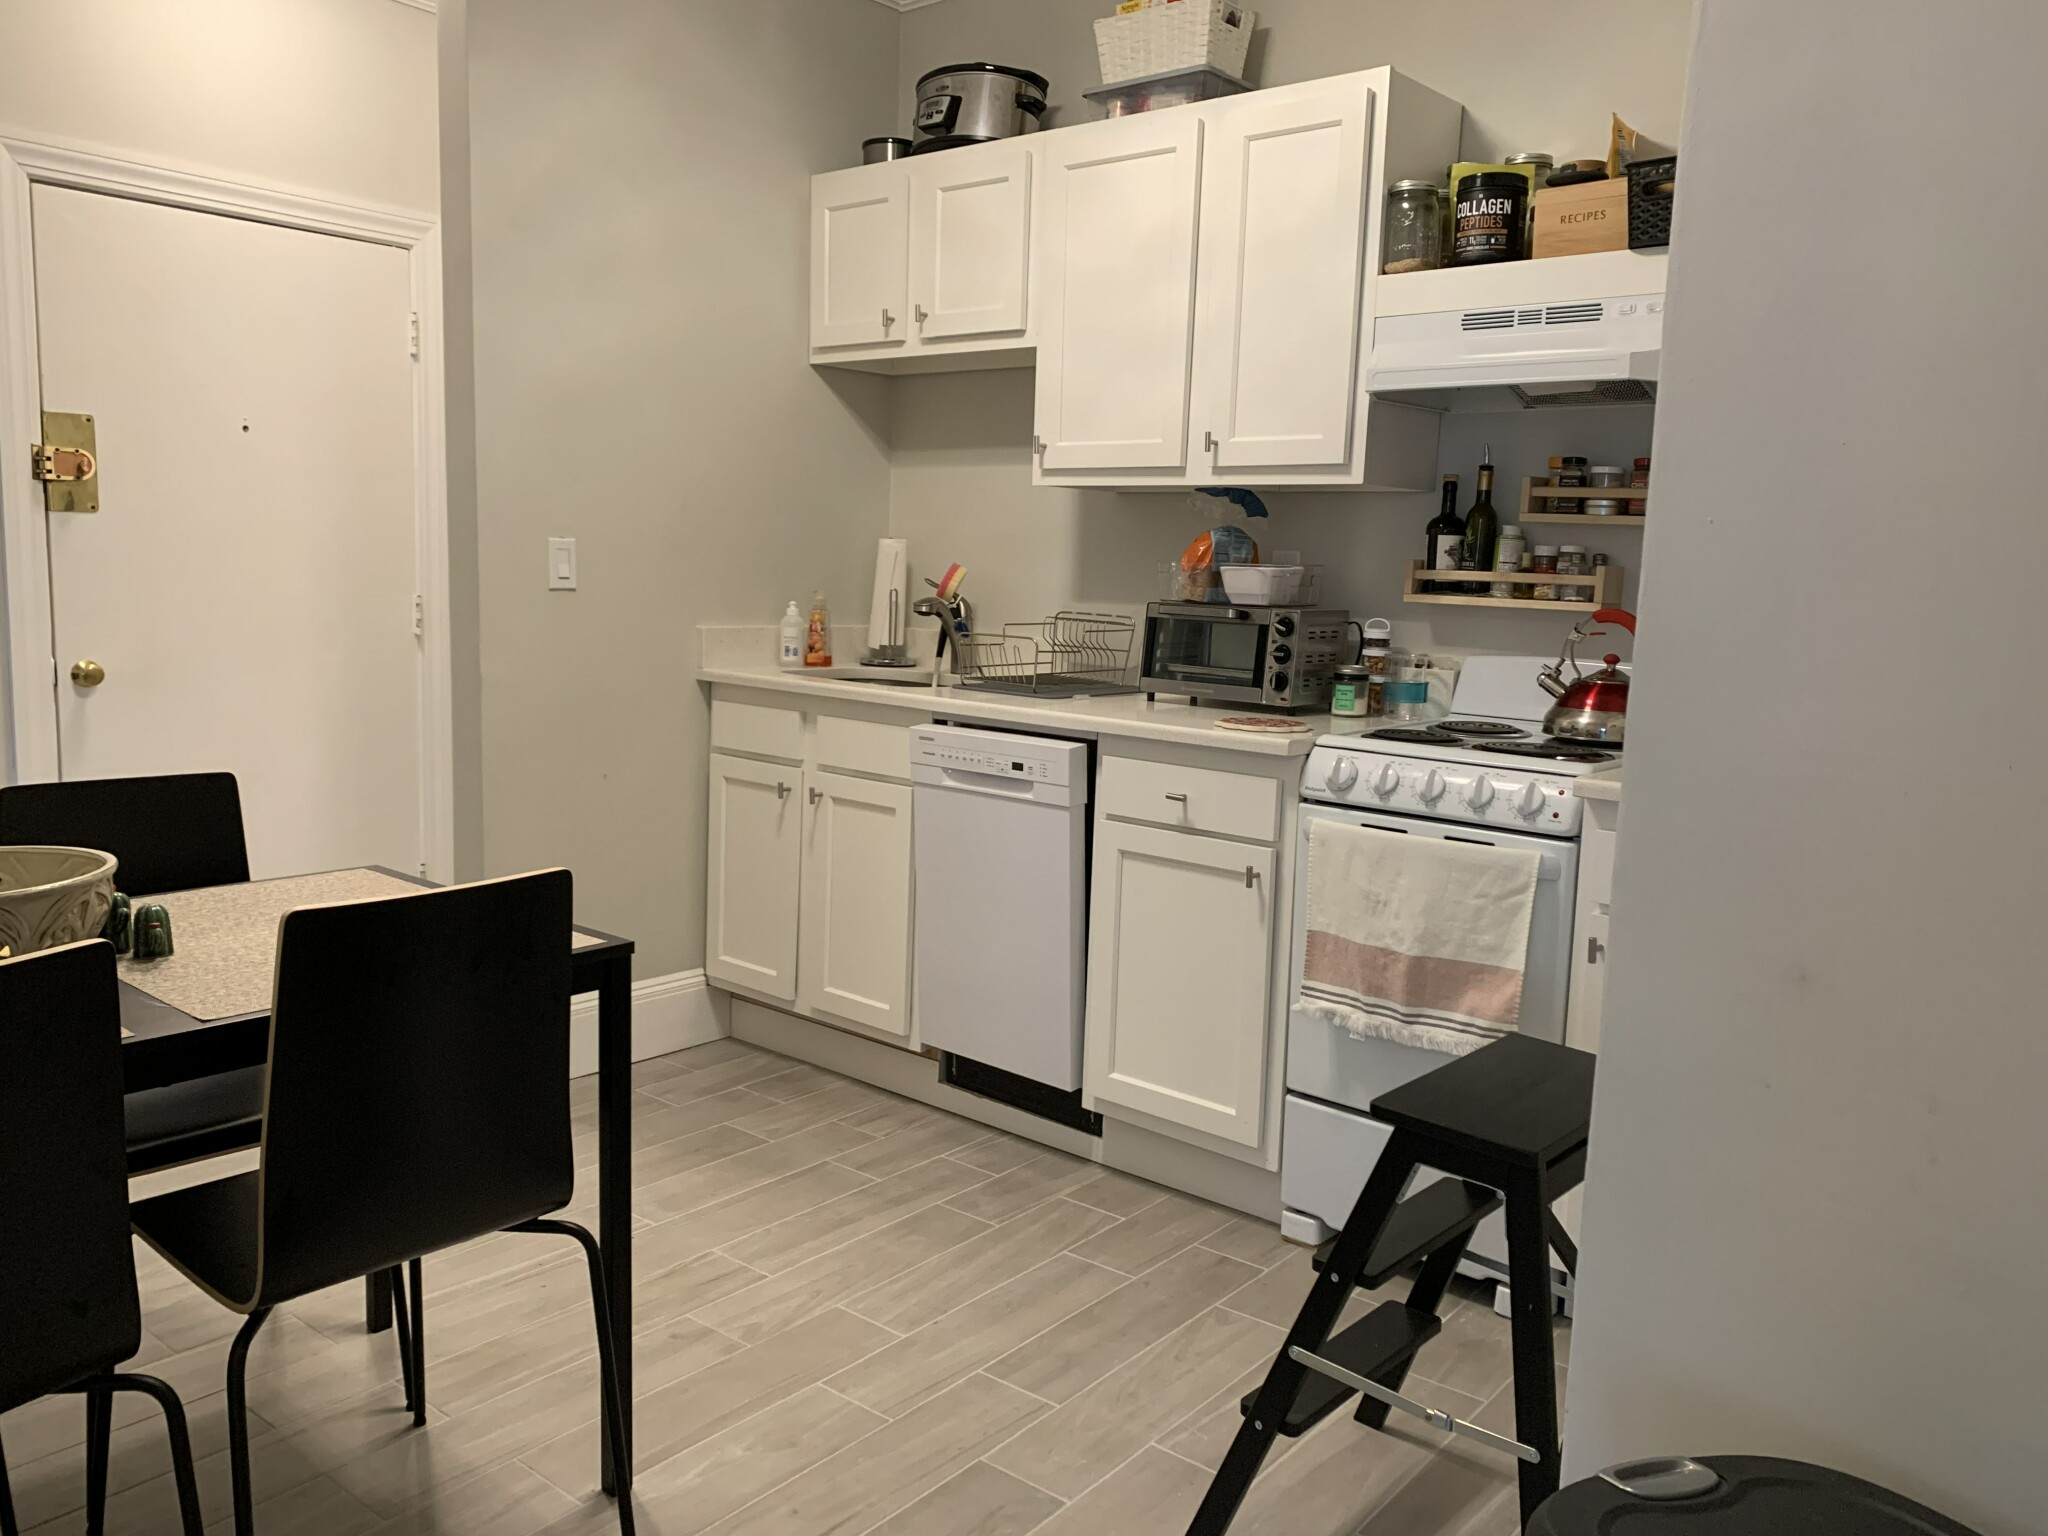 2 Beds, 1 Bath apartment in Boston, Allston for $2,200